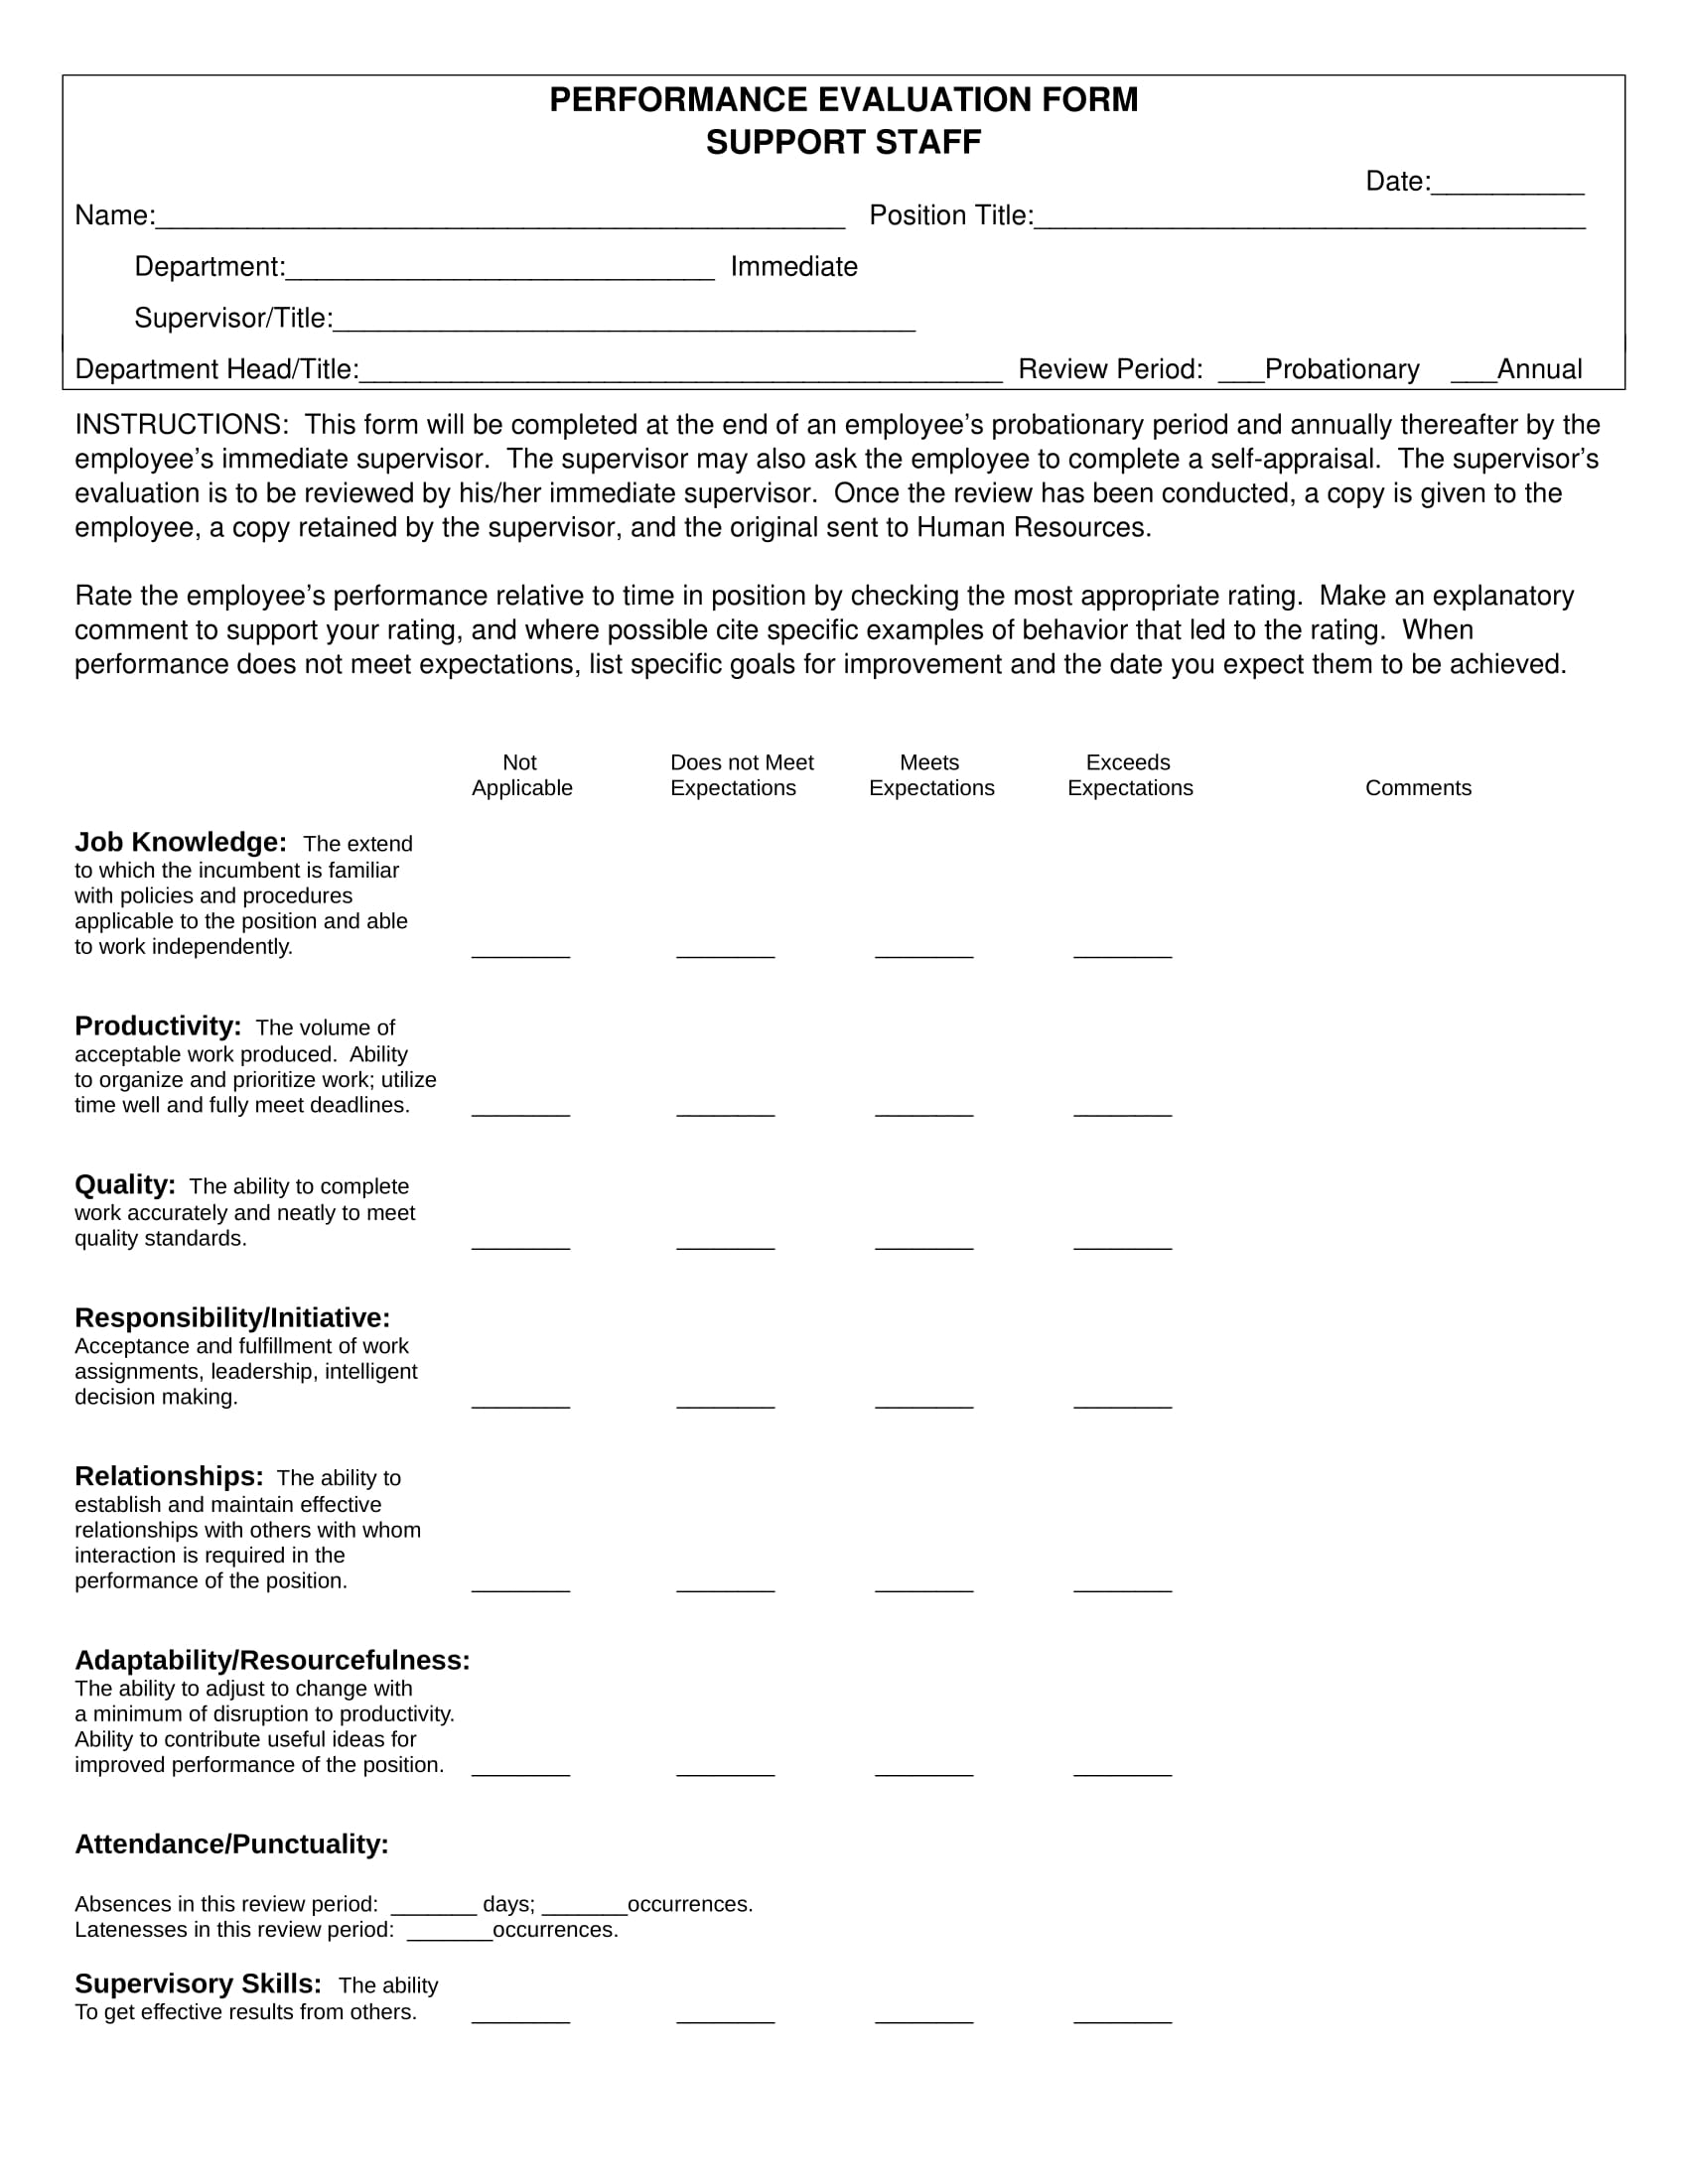 support staff performance review form 1